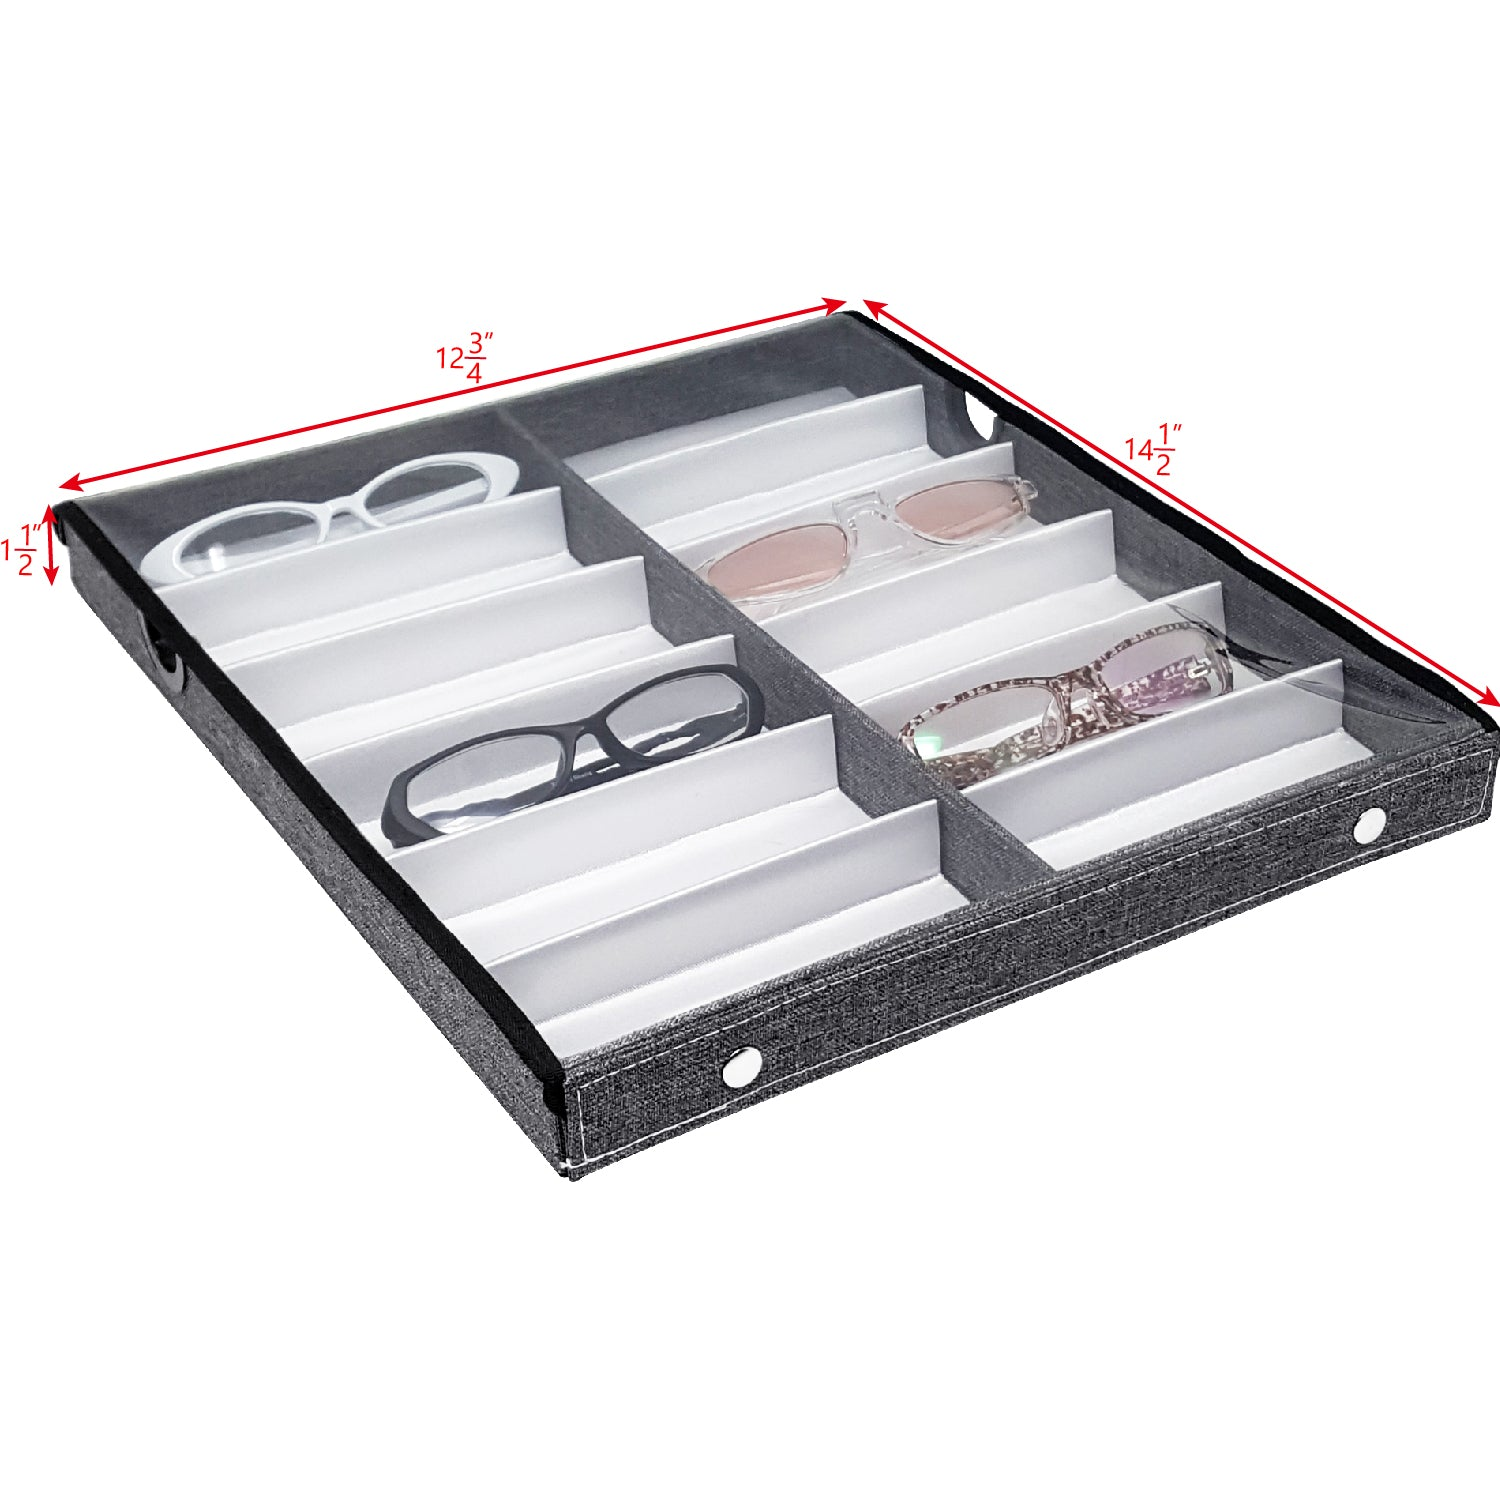 #TR-34VCS-LNG Eyewears Organizer Box - 12 Slots Sunglasses Box Display Tray with Clear Lid